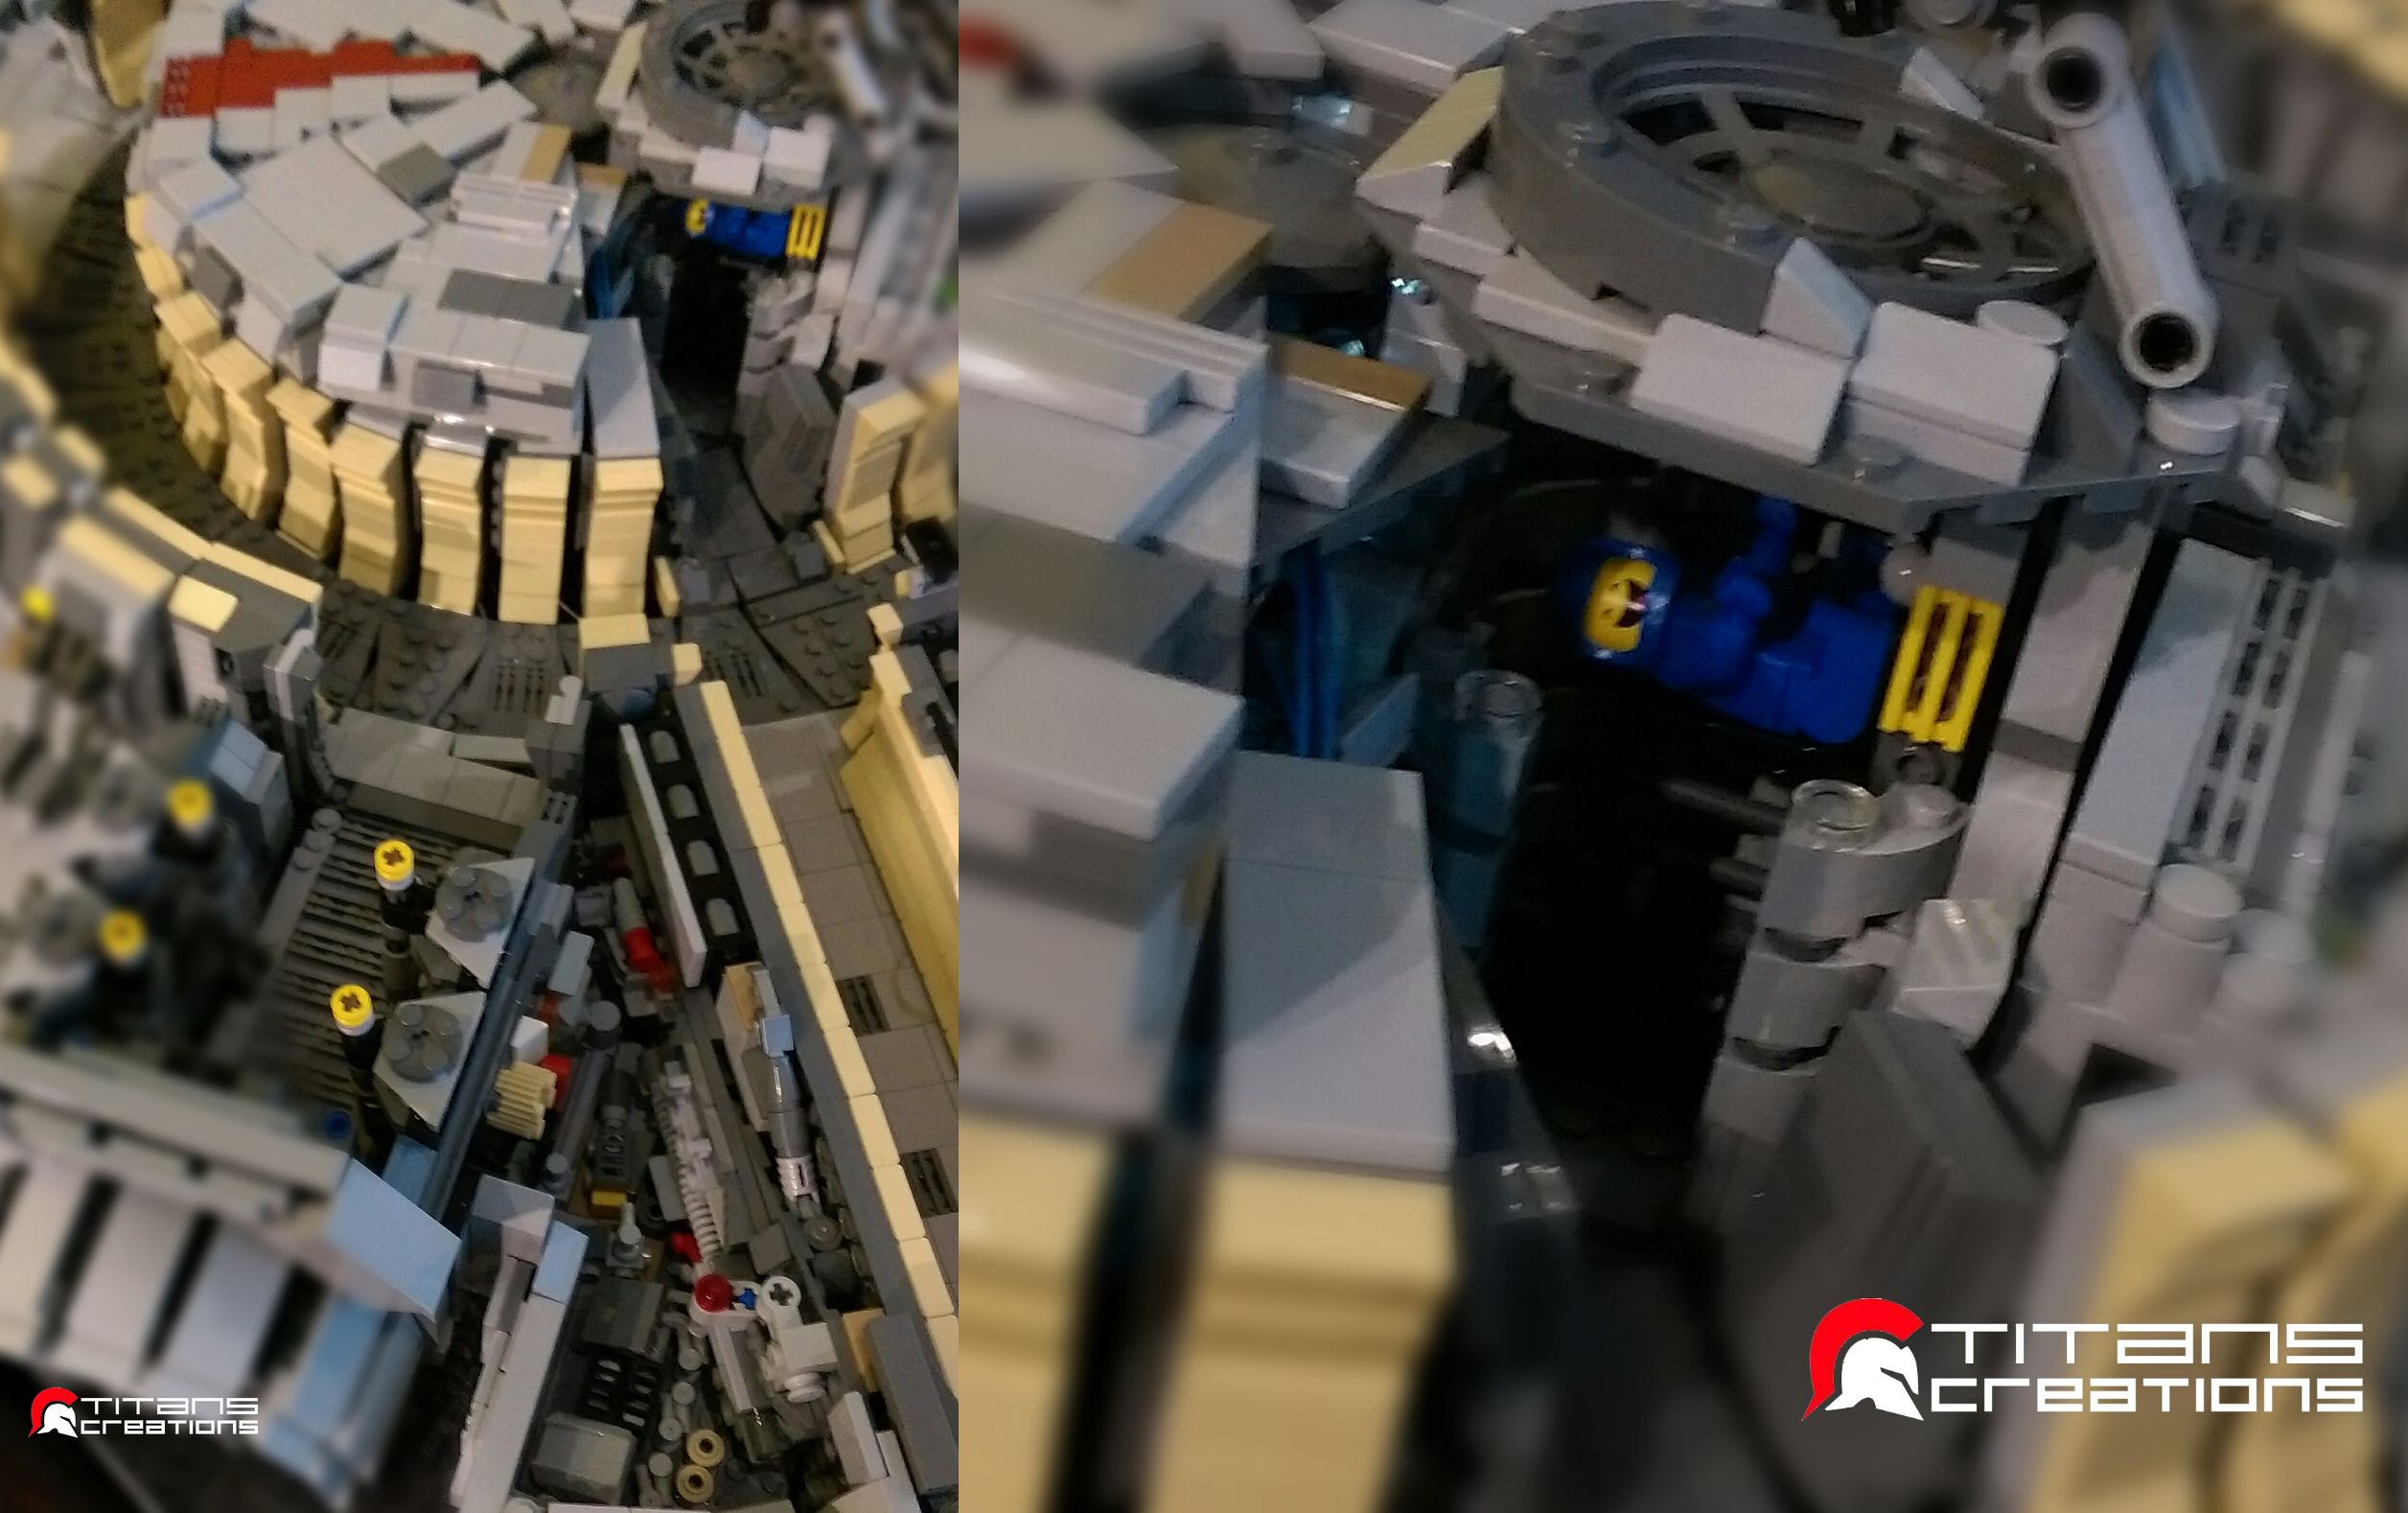 There s an incredible amount of detail in this 10 000 brick lego